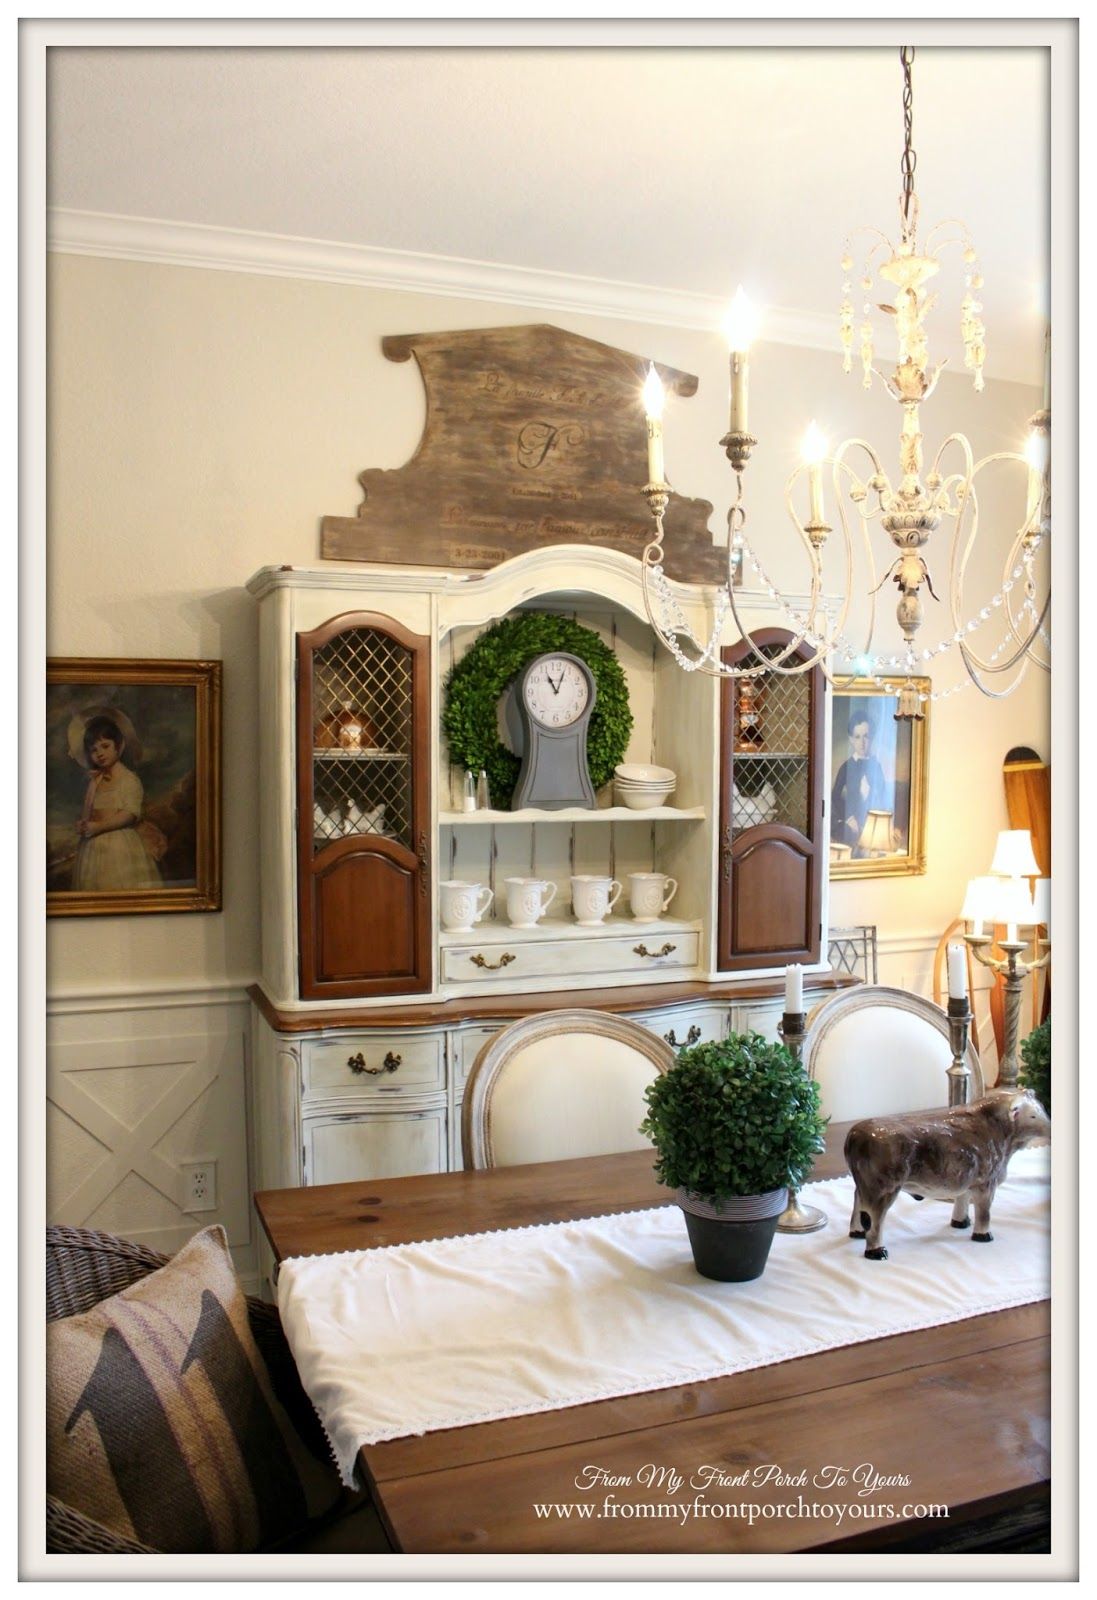 From My Front Porch To Yours: French Country Farmhouse ...